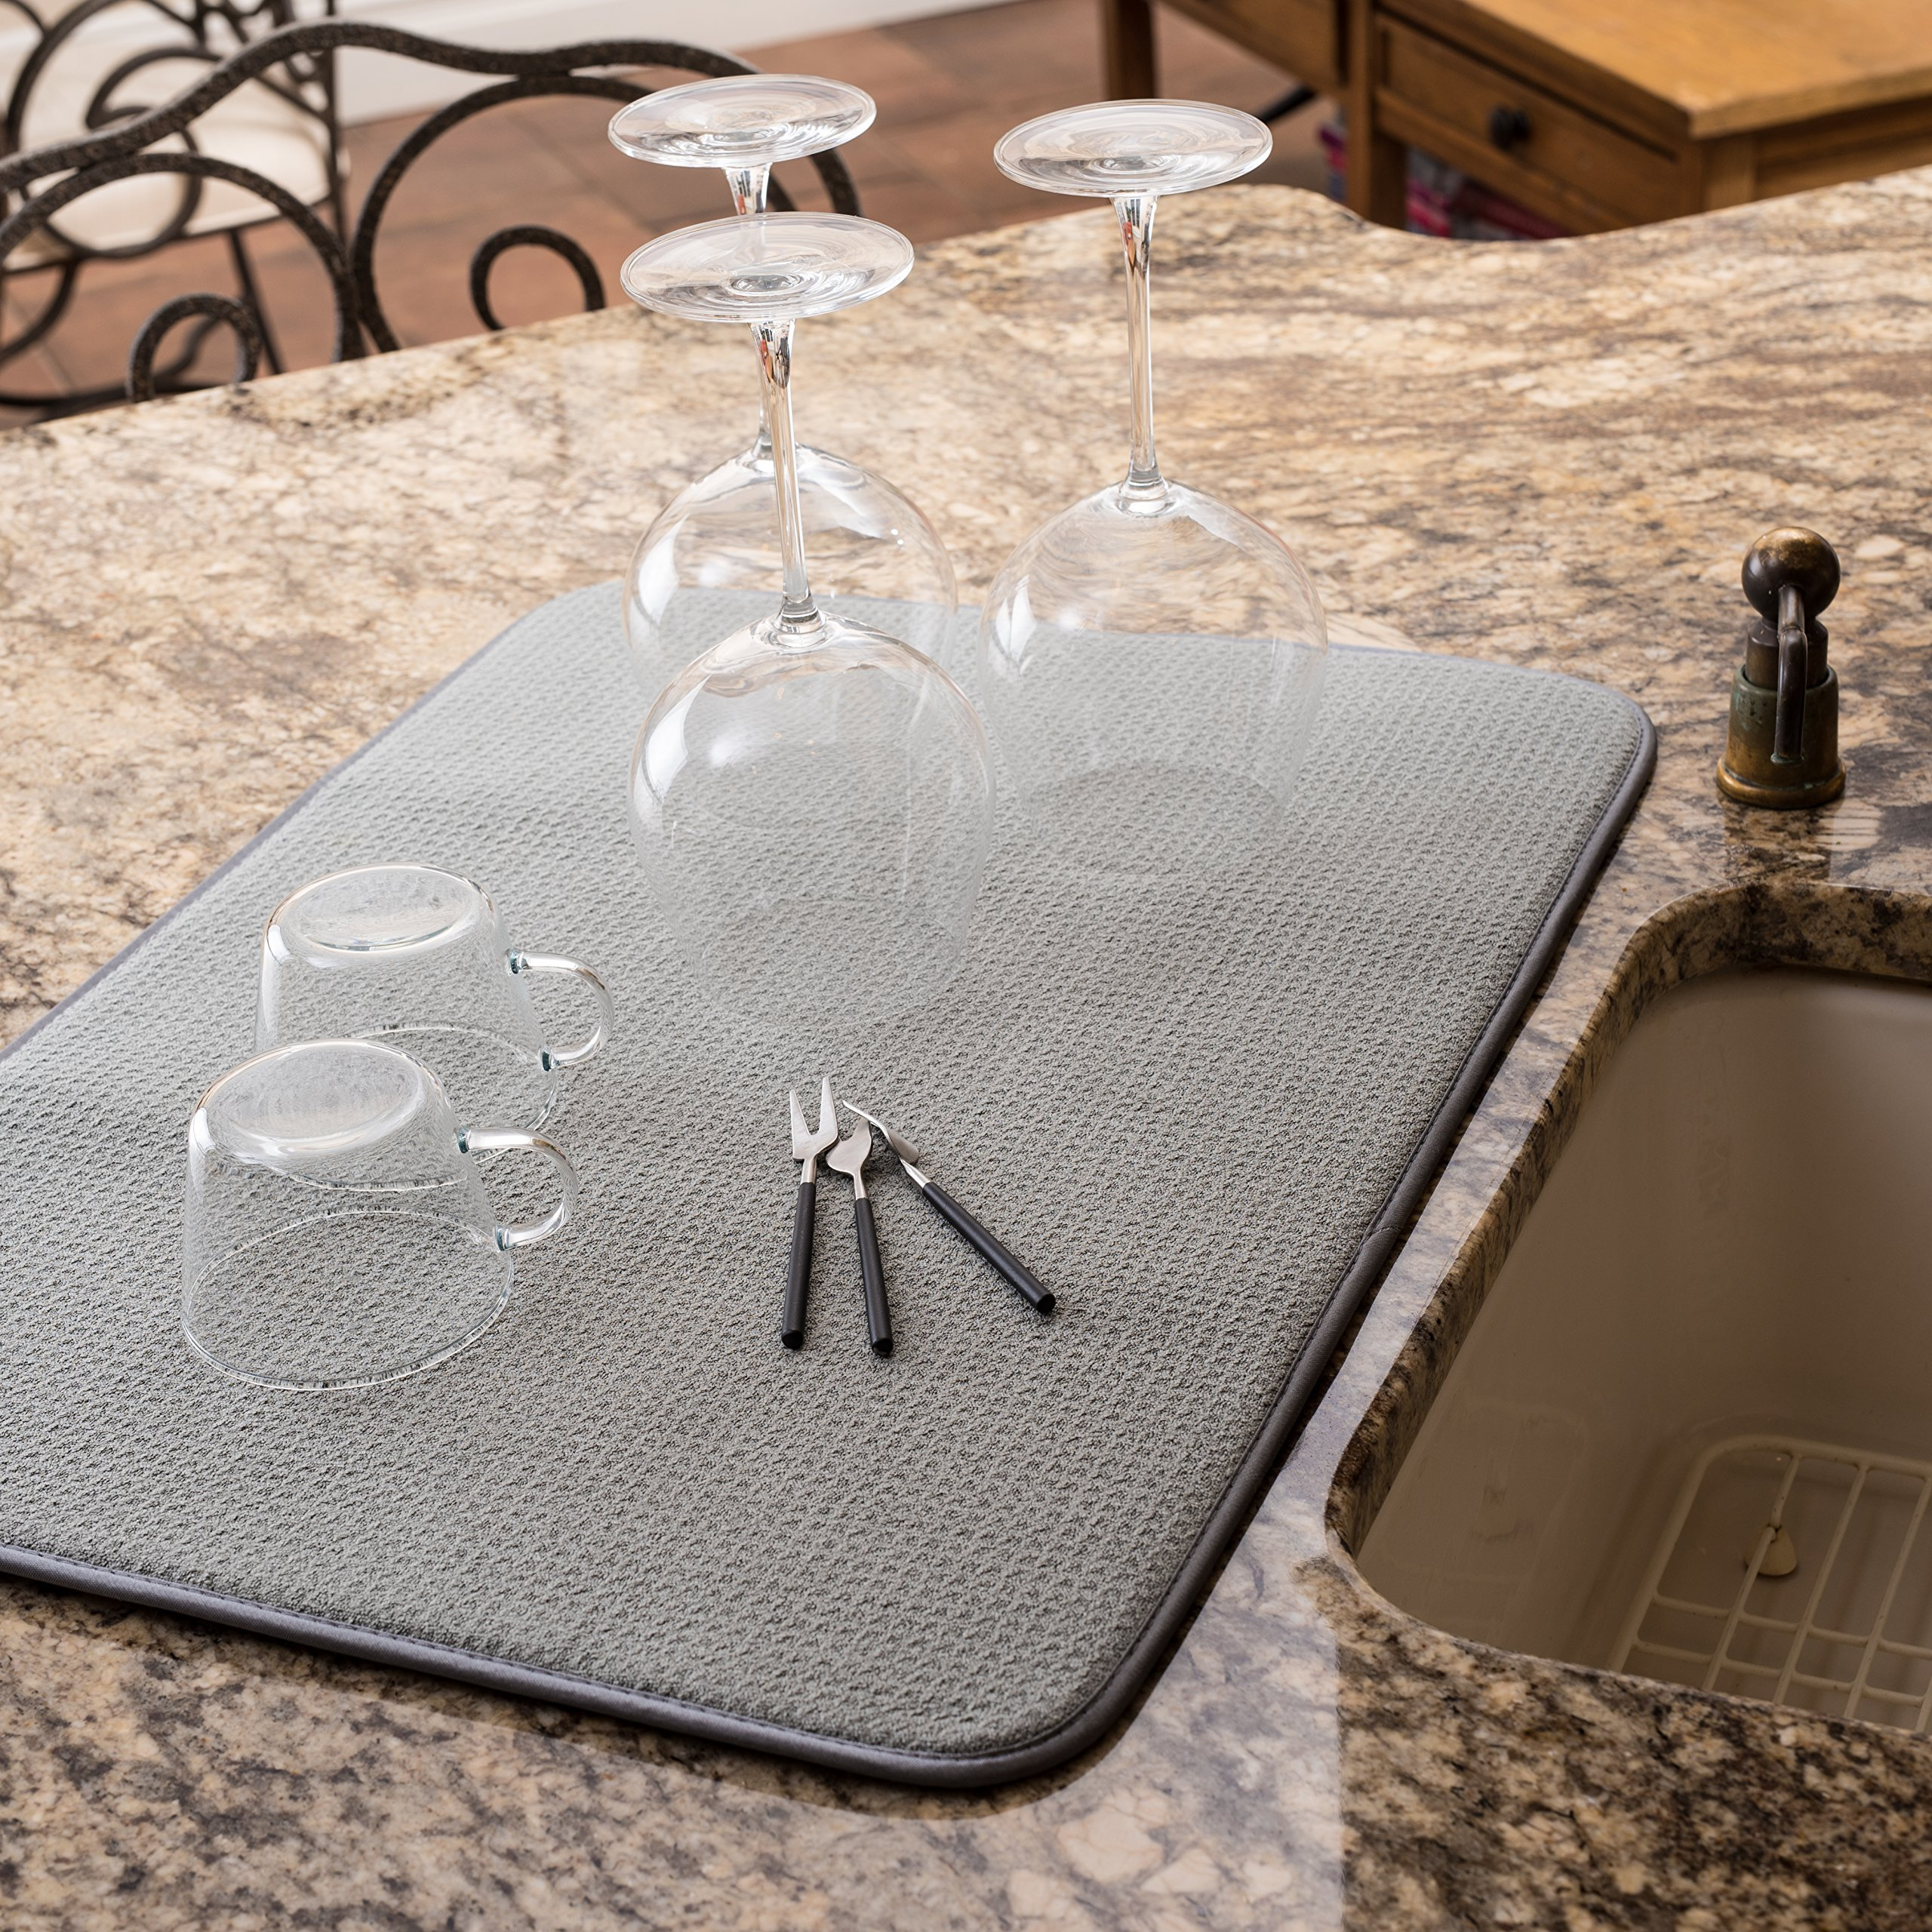 XXL Dish Mat 24'' x 17'' (LARGEST MAT) Microfiber Dish Drying Mat, Super absorbent by Bellemain by Bellemain (Image #4)